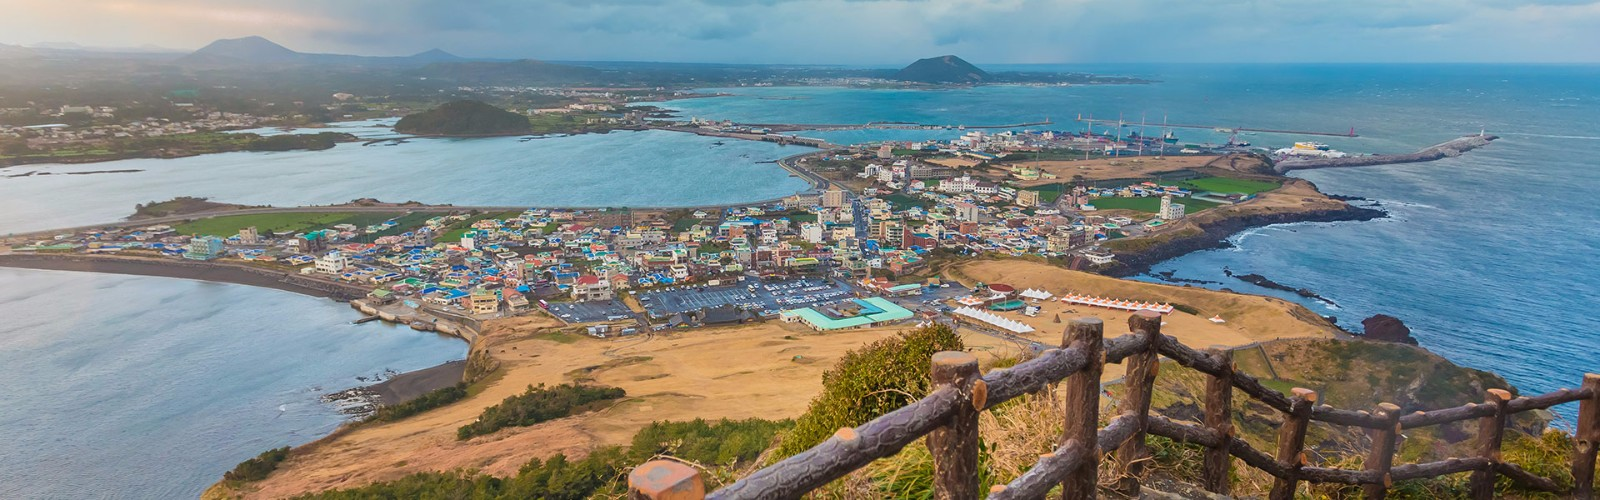 Jeju Island Short Stay Tour | Wendy Wu Tours